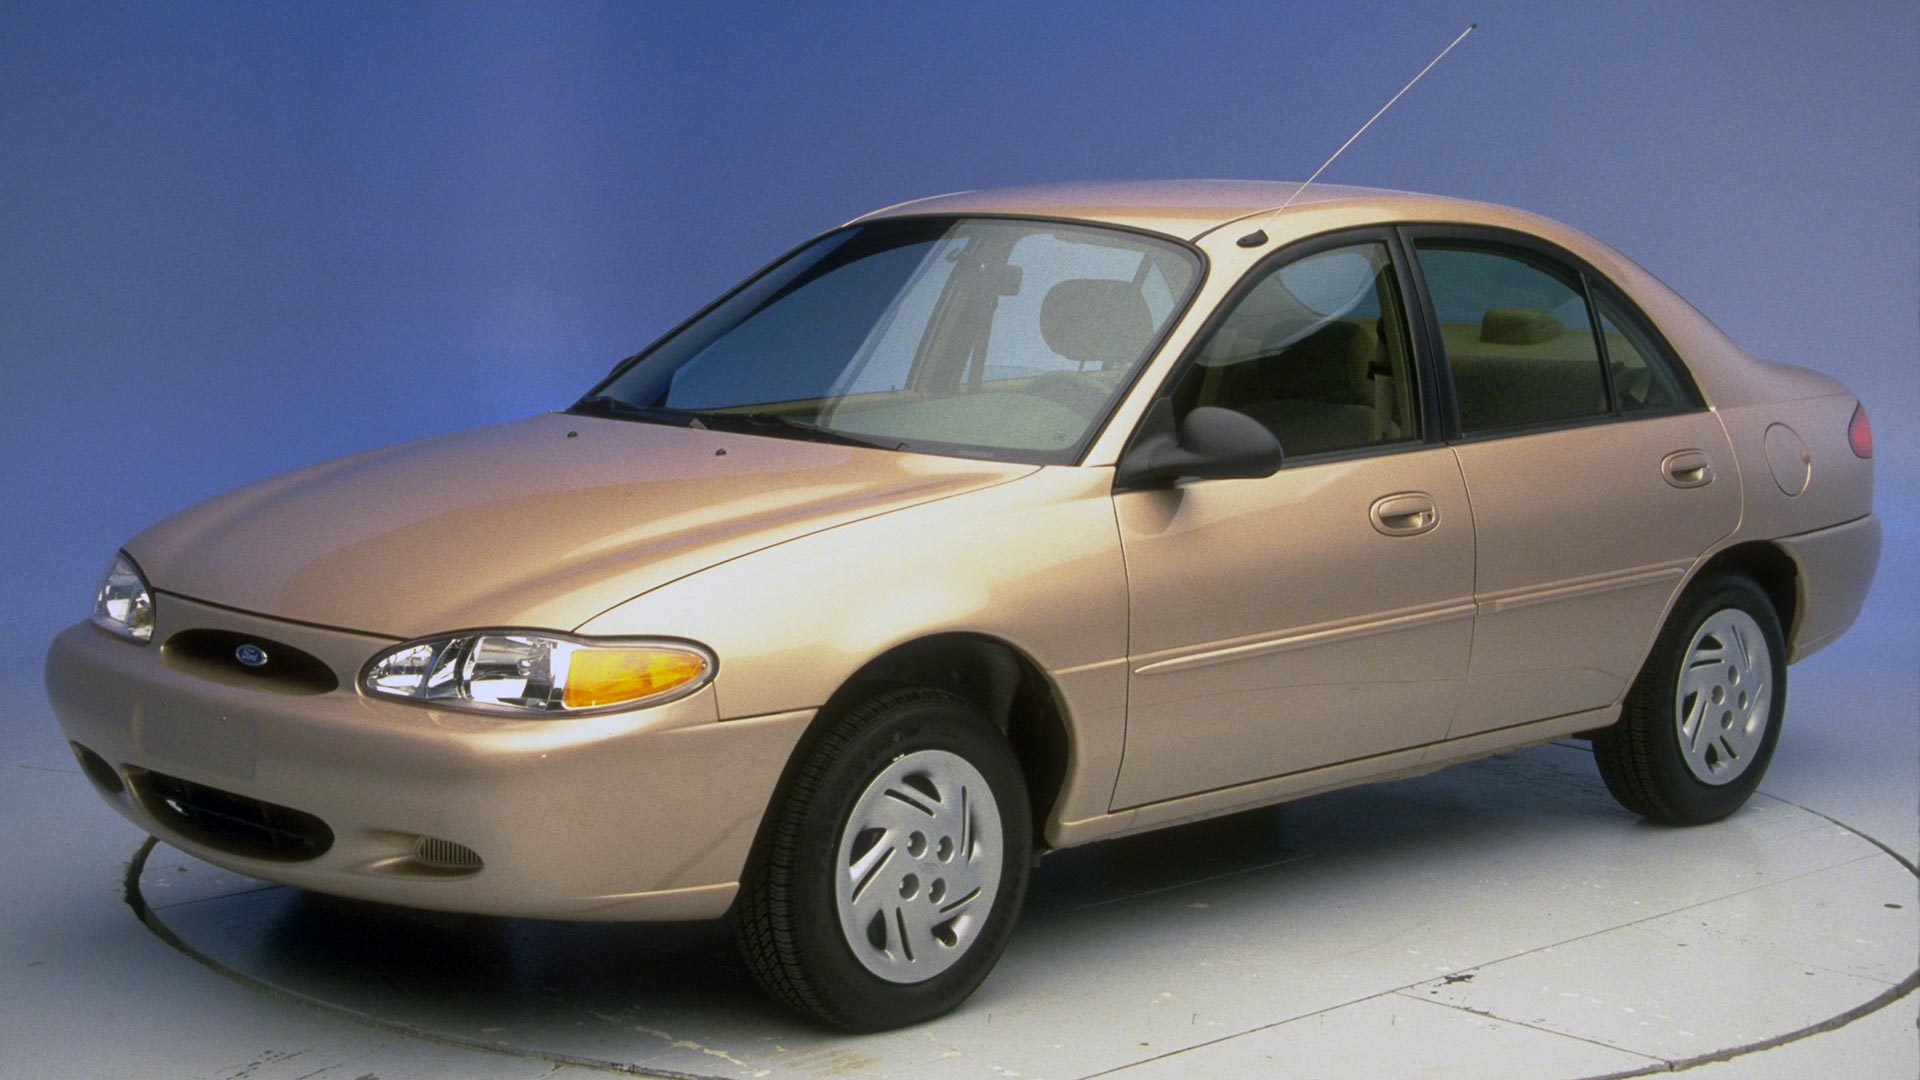 2002 Ford Escort 4-door sedan